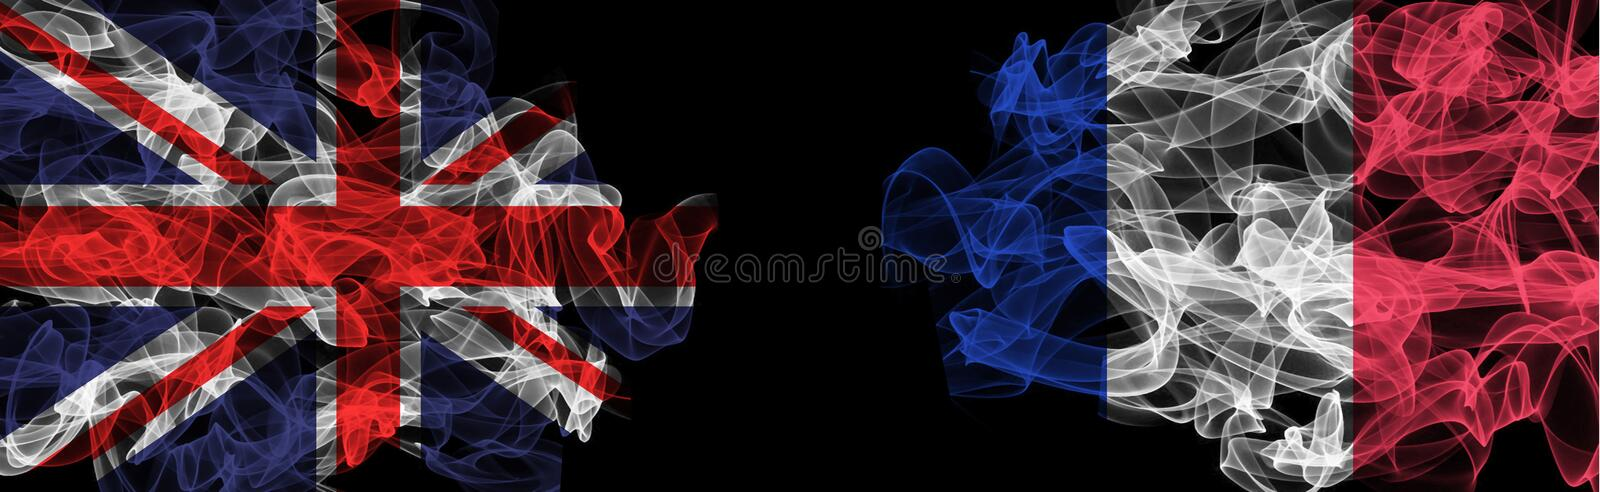 Flags of Union Jack and France on Black background, Union Jack vs France Smoke Flags. Flag on Black background royalty free stock photography